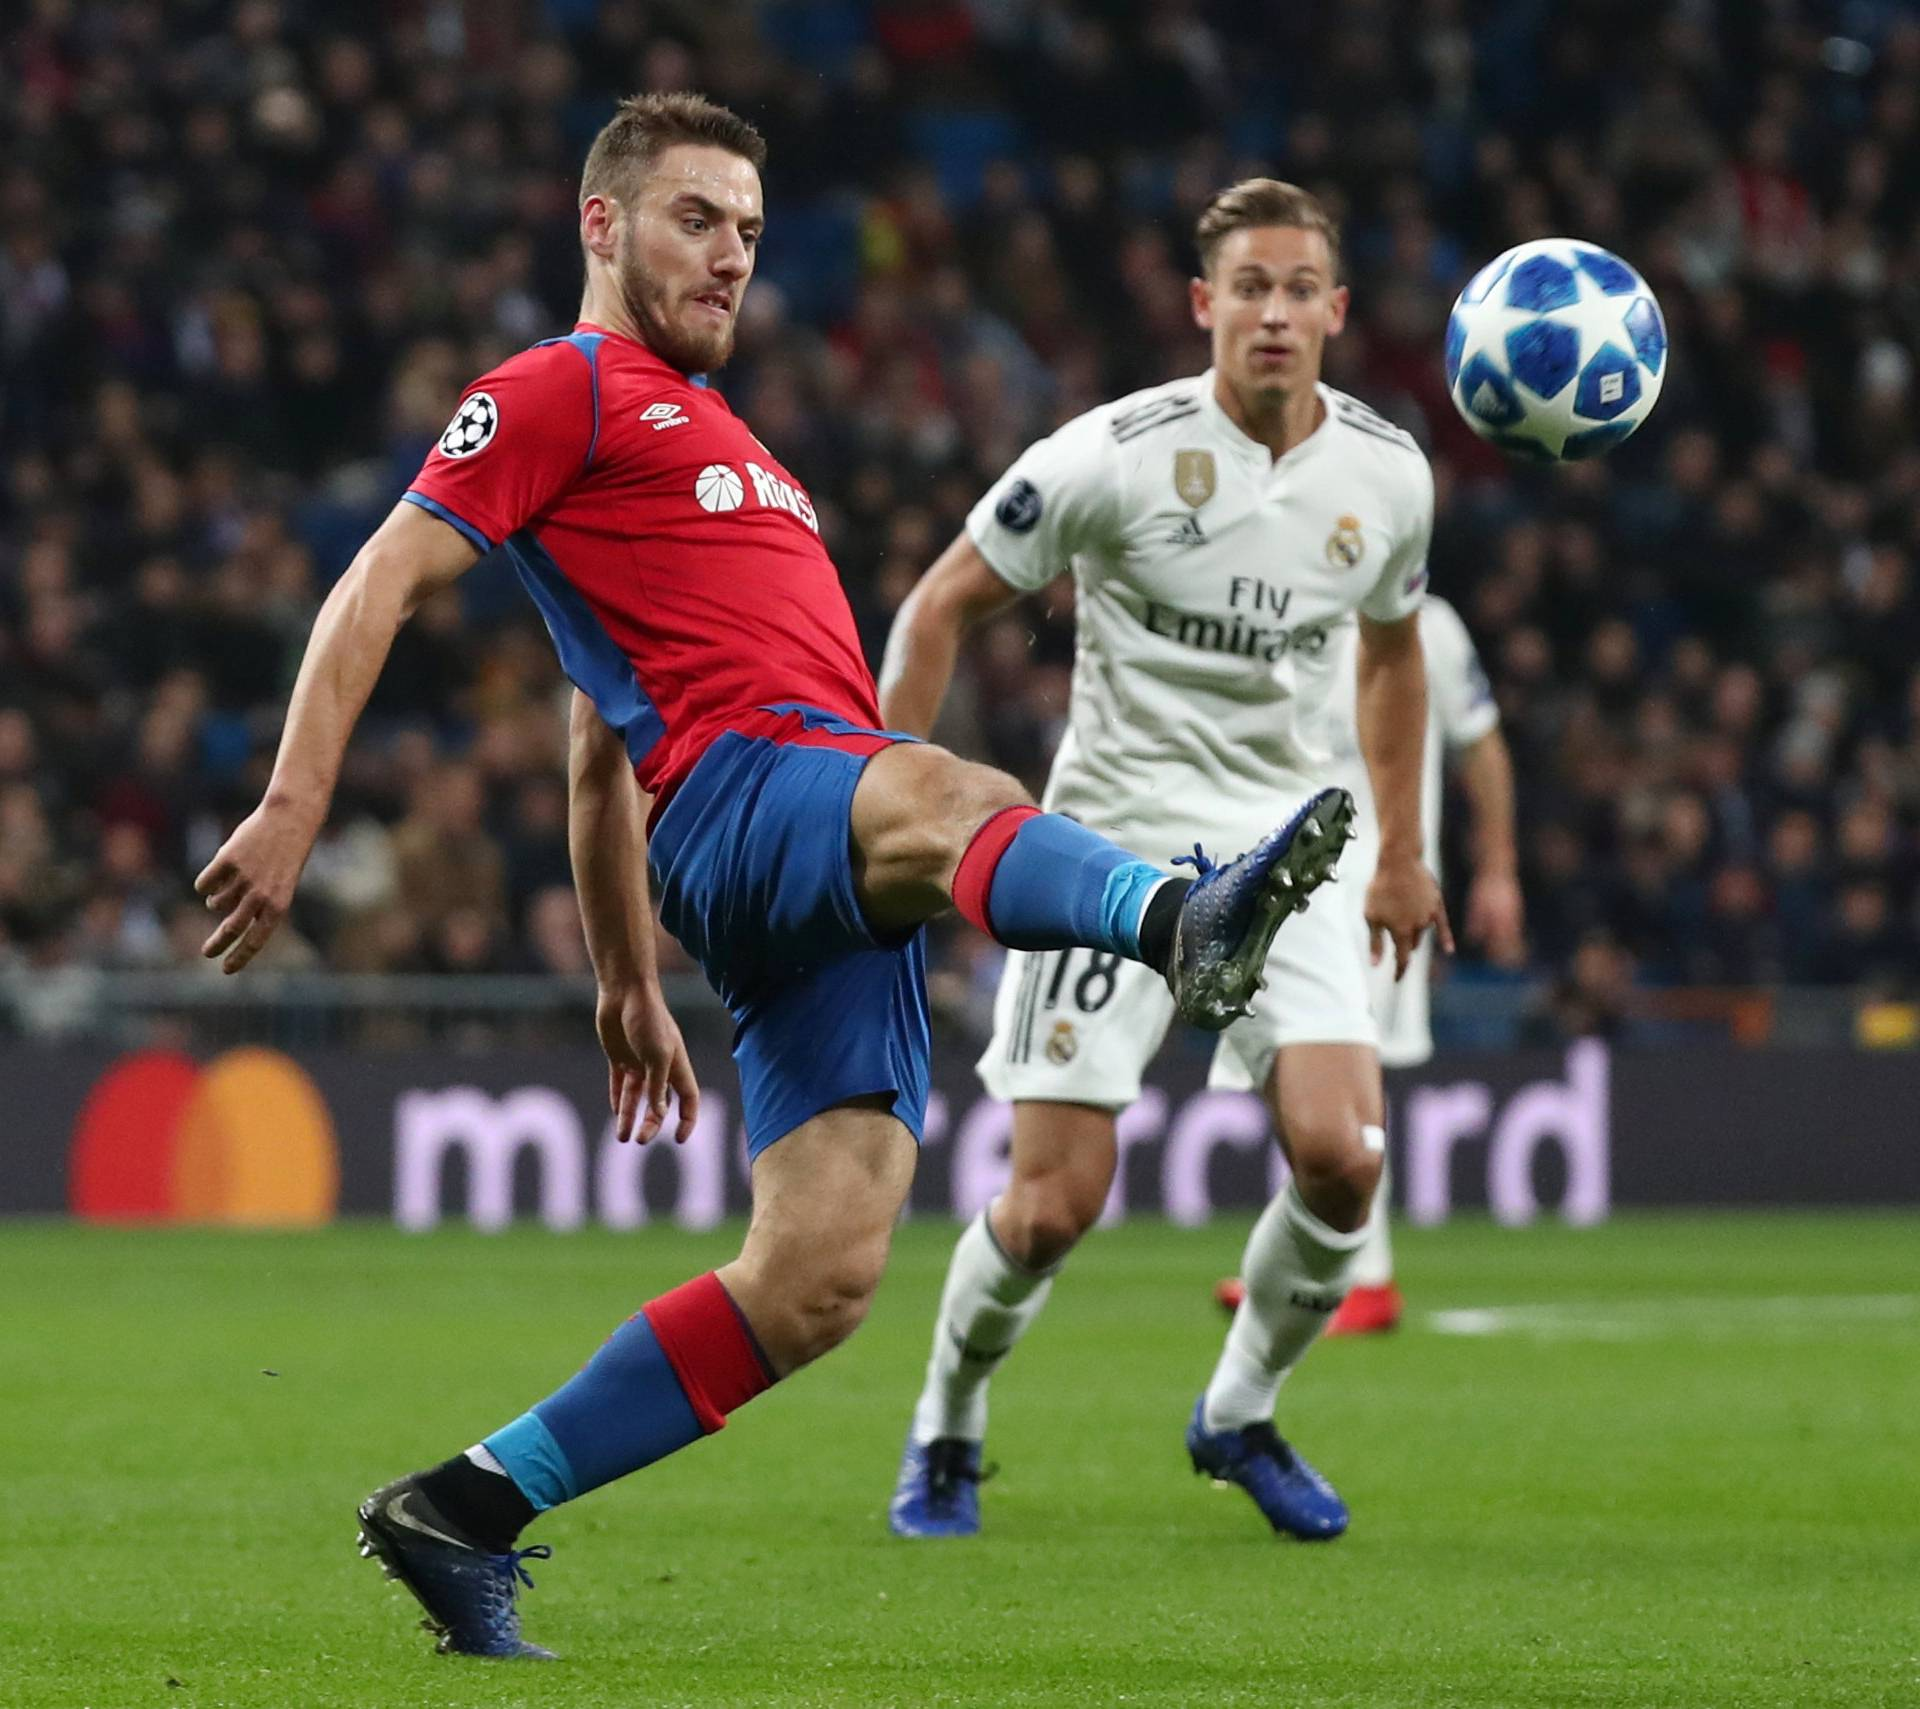 Champions League - Group Stage - Group G - Real Madrid v CSKA Moscow